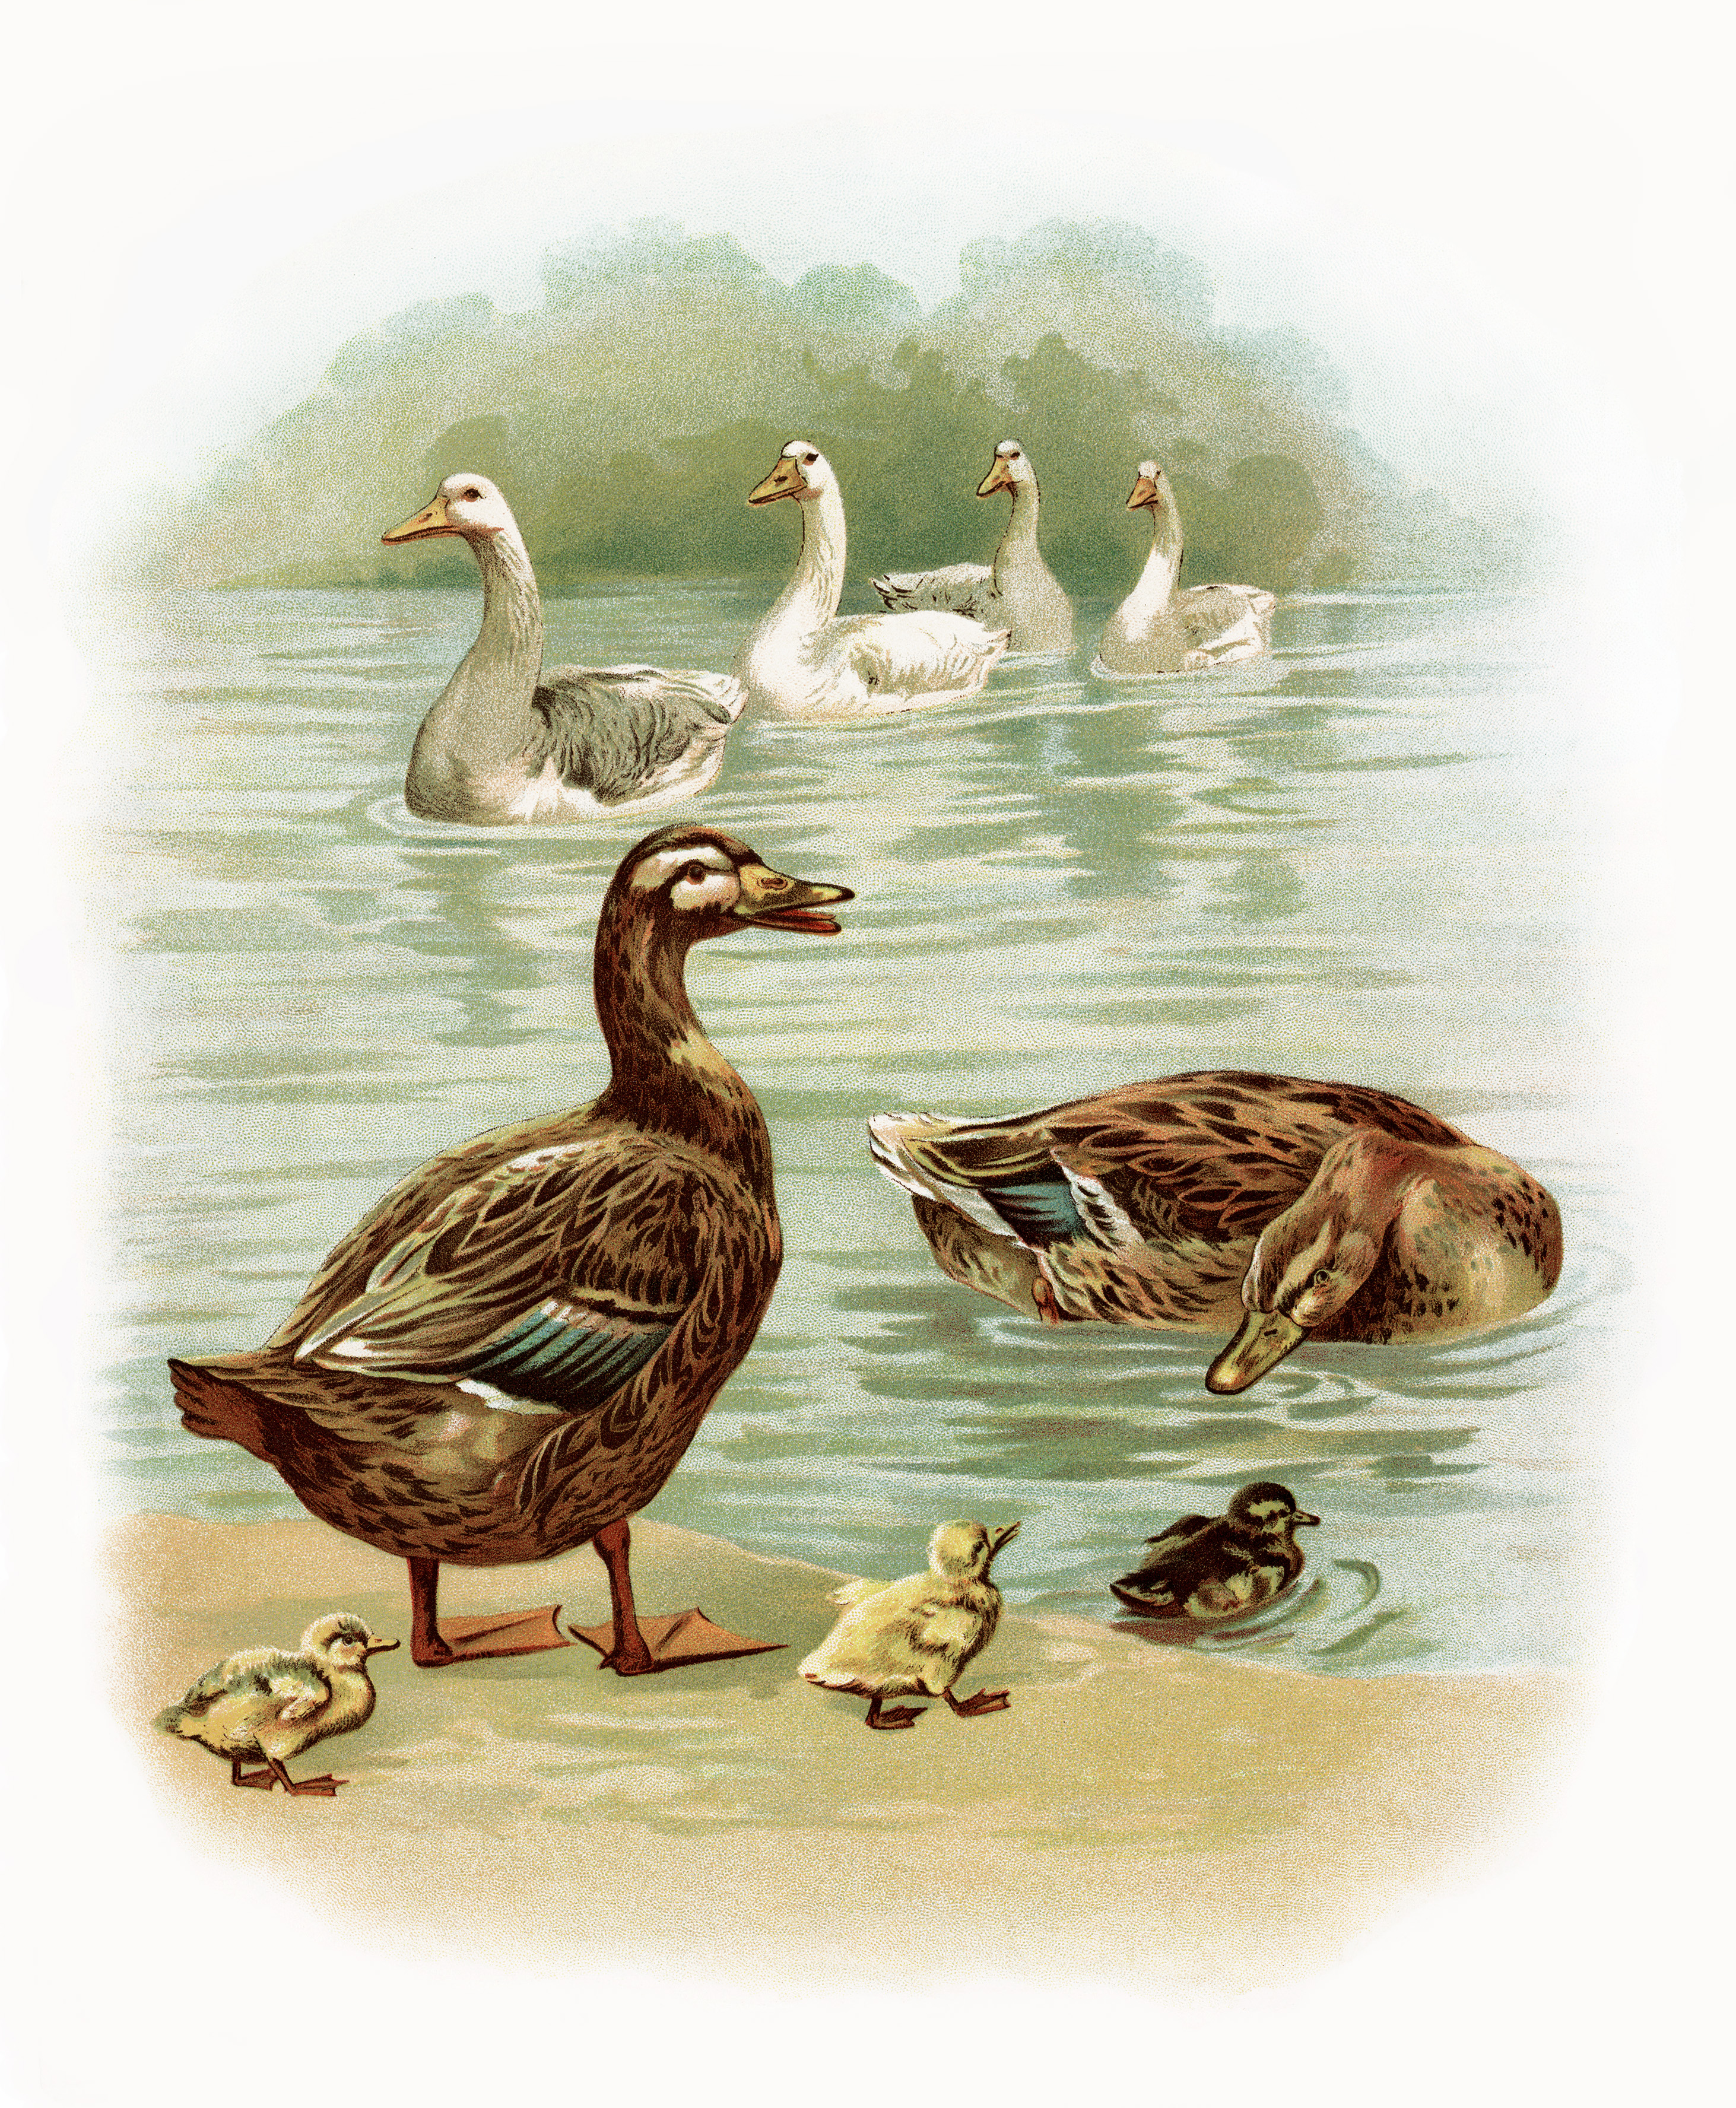 Free image geese and. Ducks clipart vintage duck